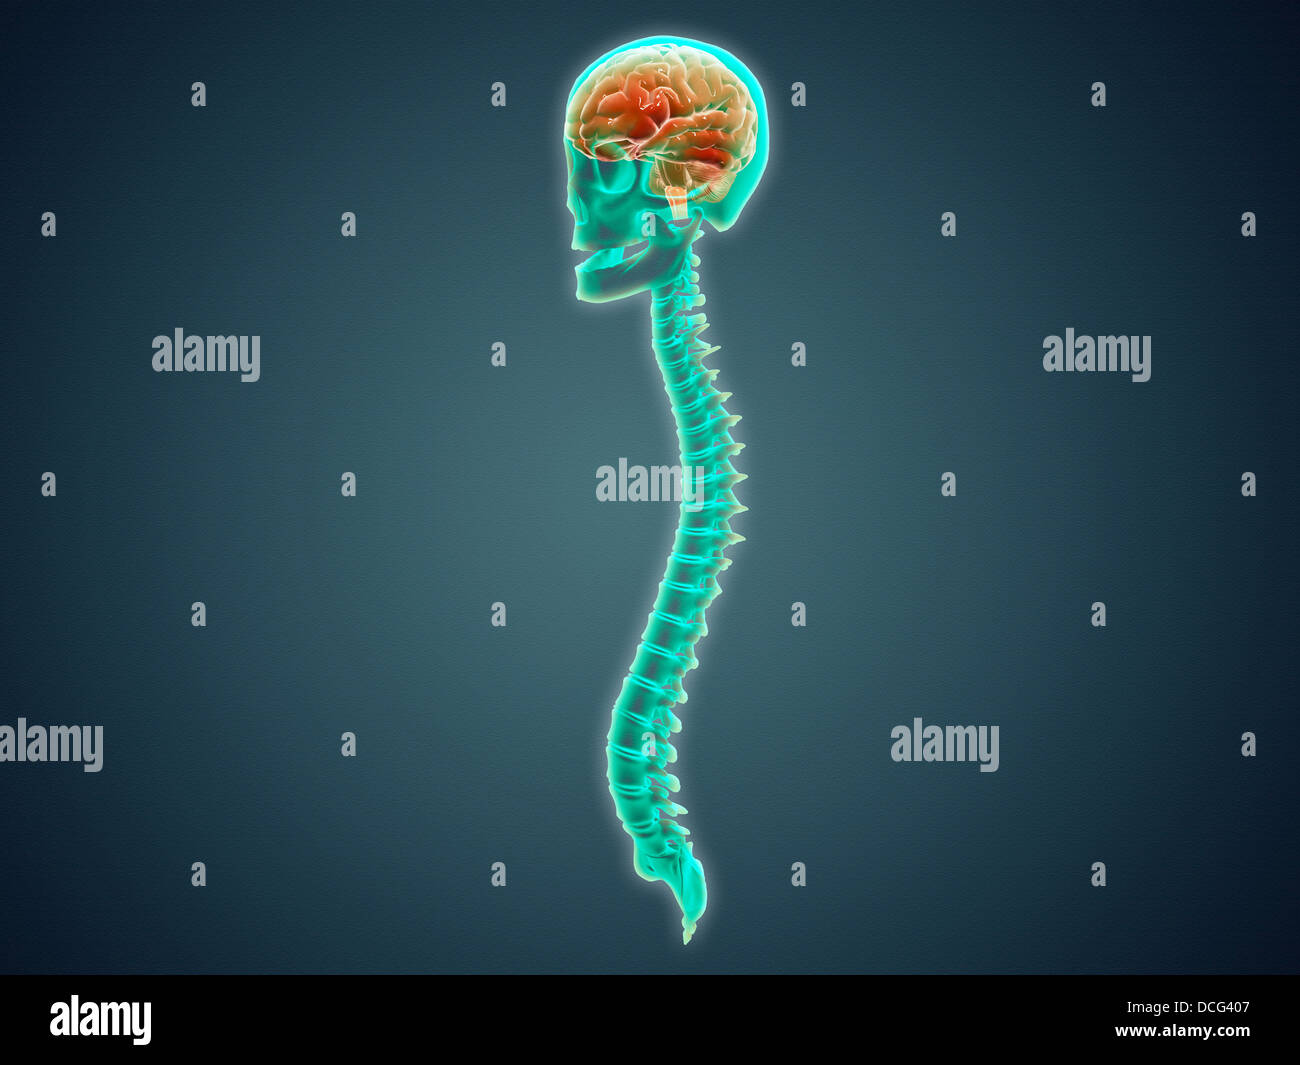 Conceptual image of human brain, skull and spinal cord. - Stock Image